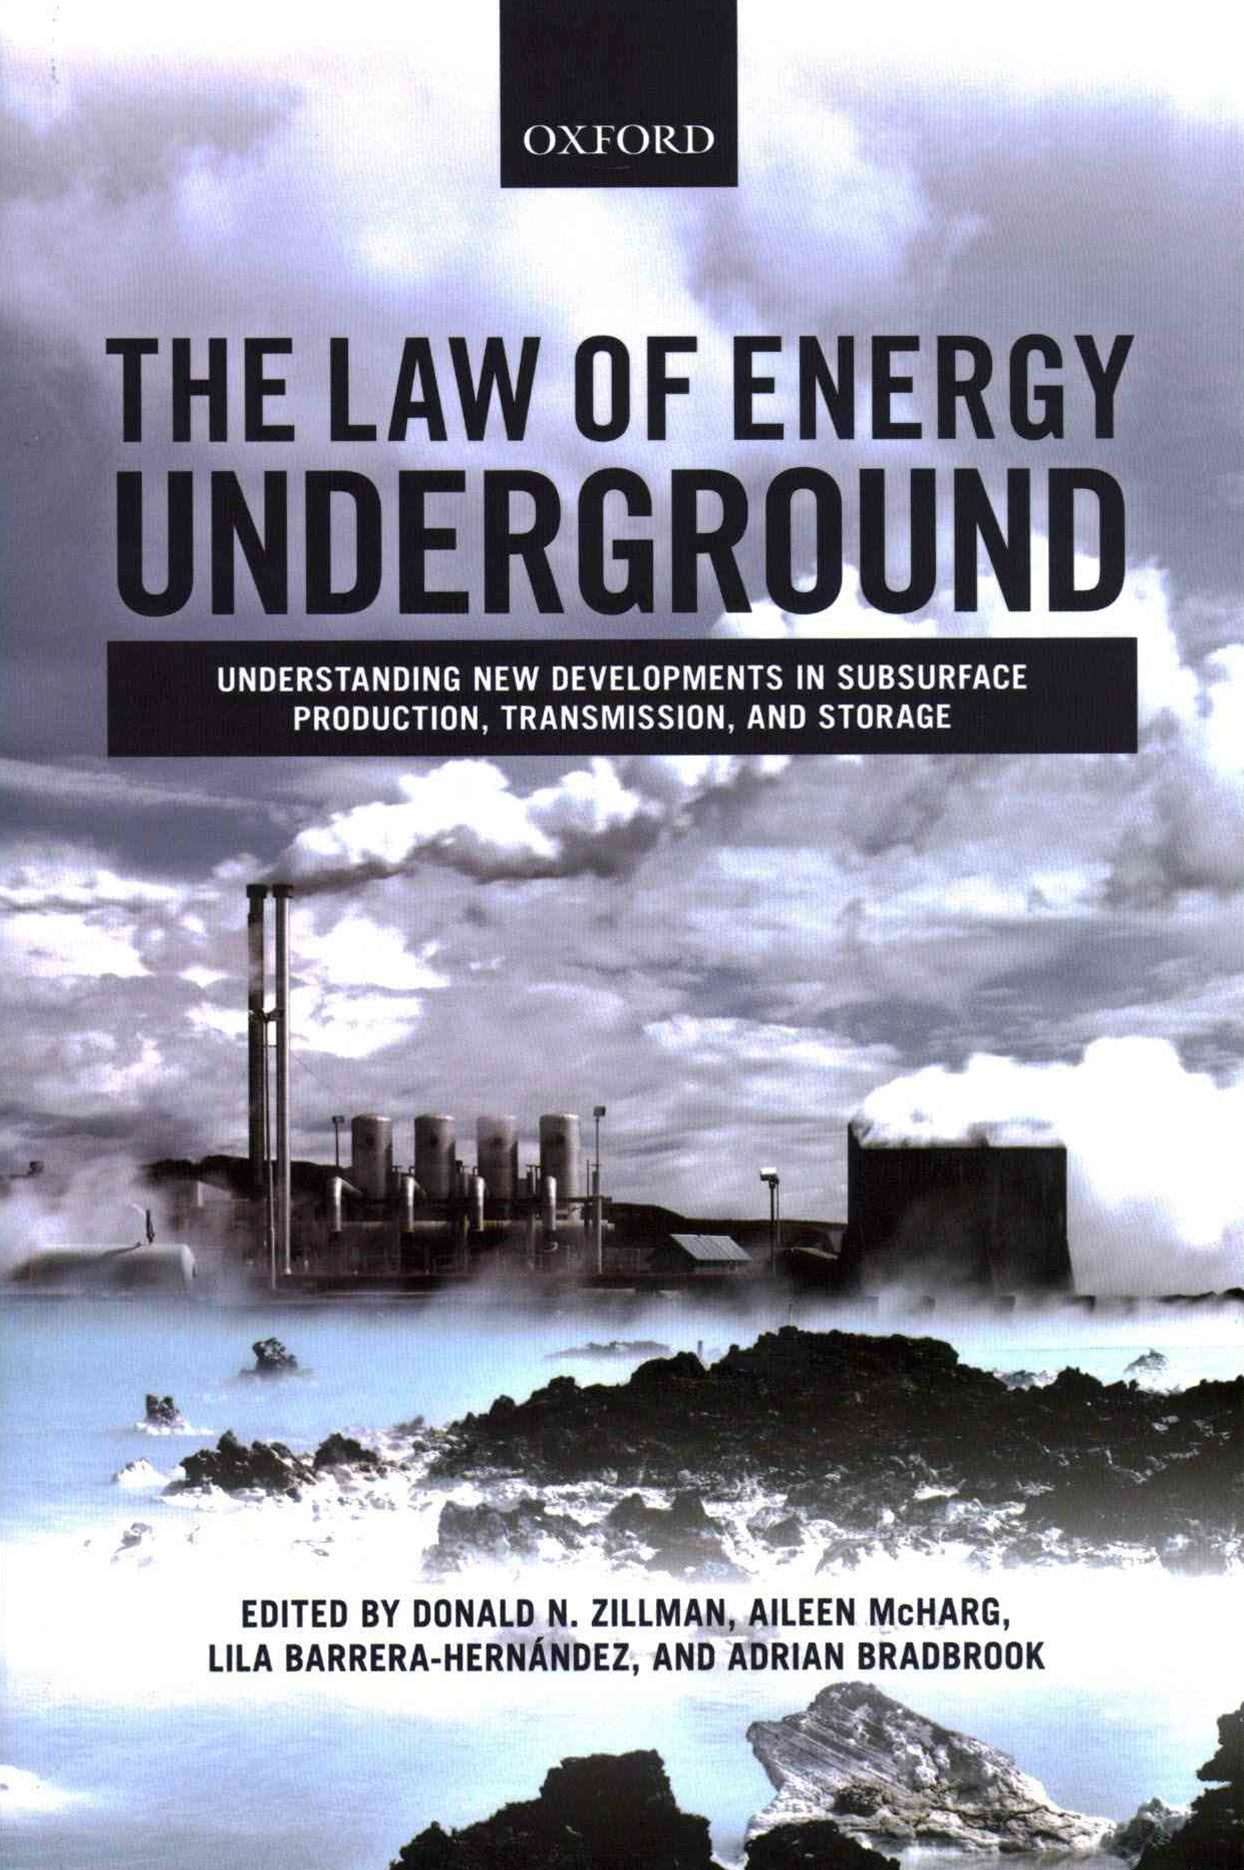 The Law of Energy Underground: Understanding New Developments in Subsurface